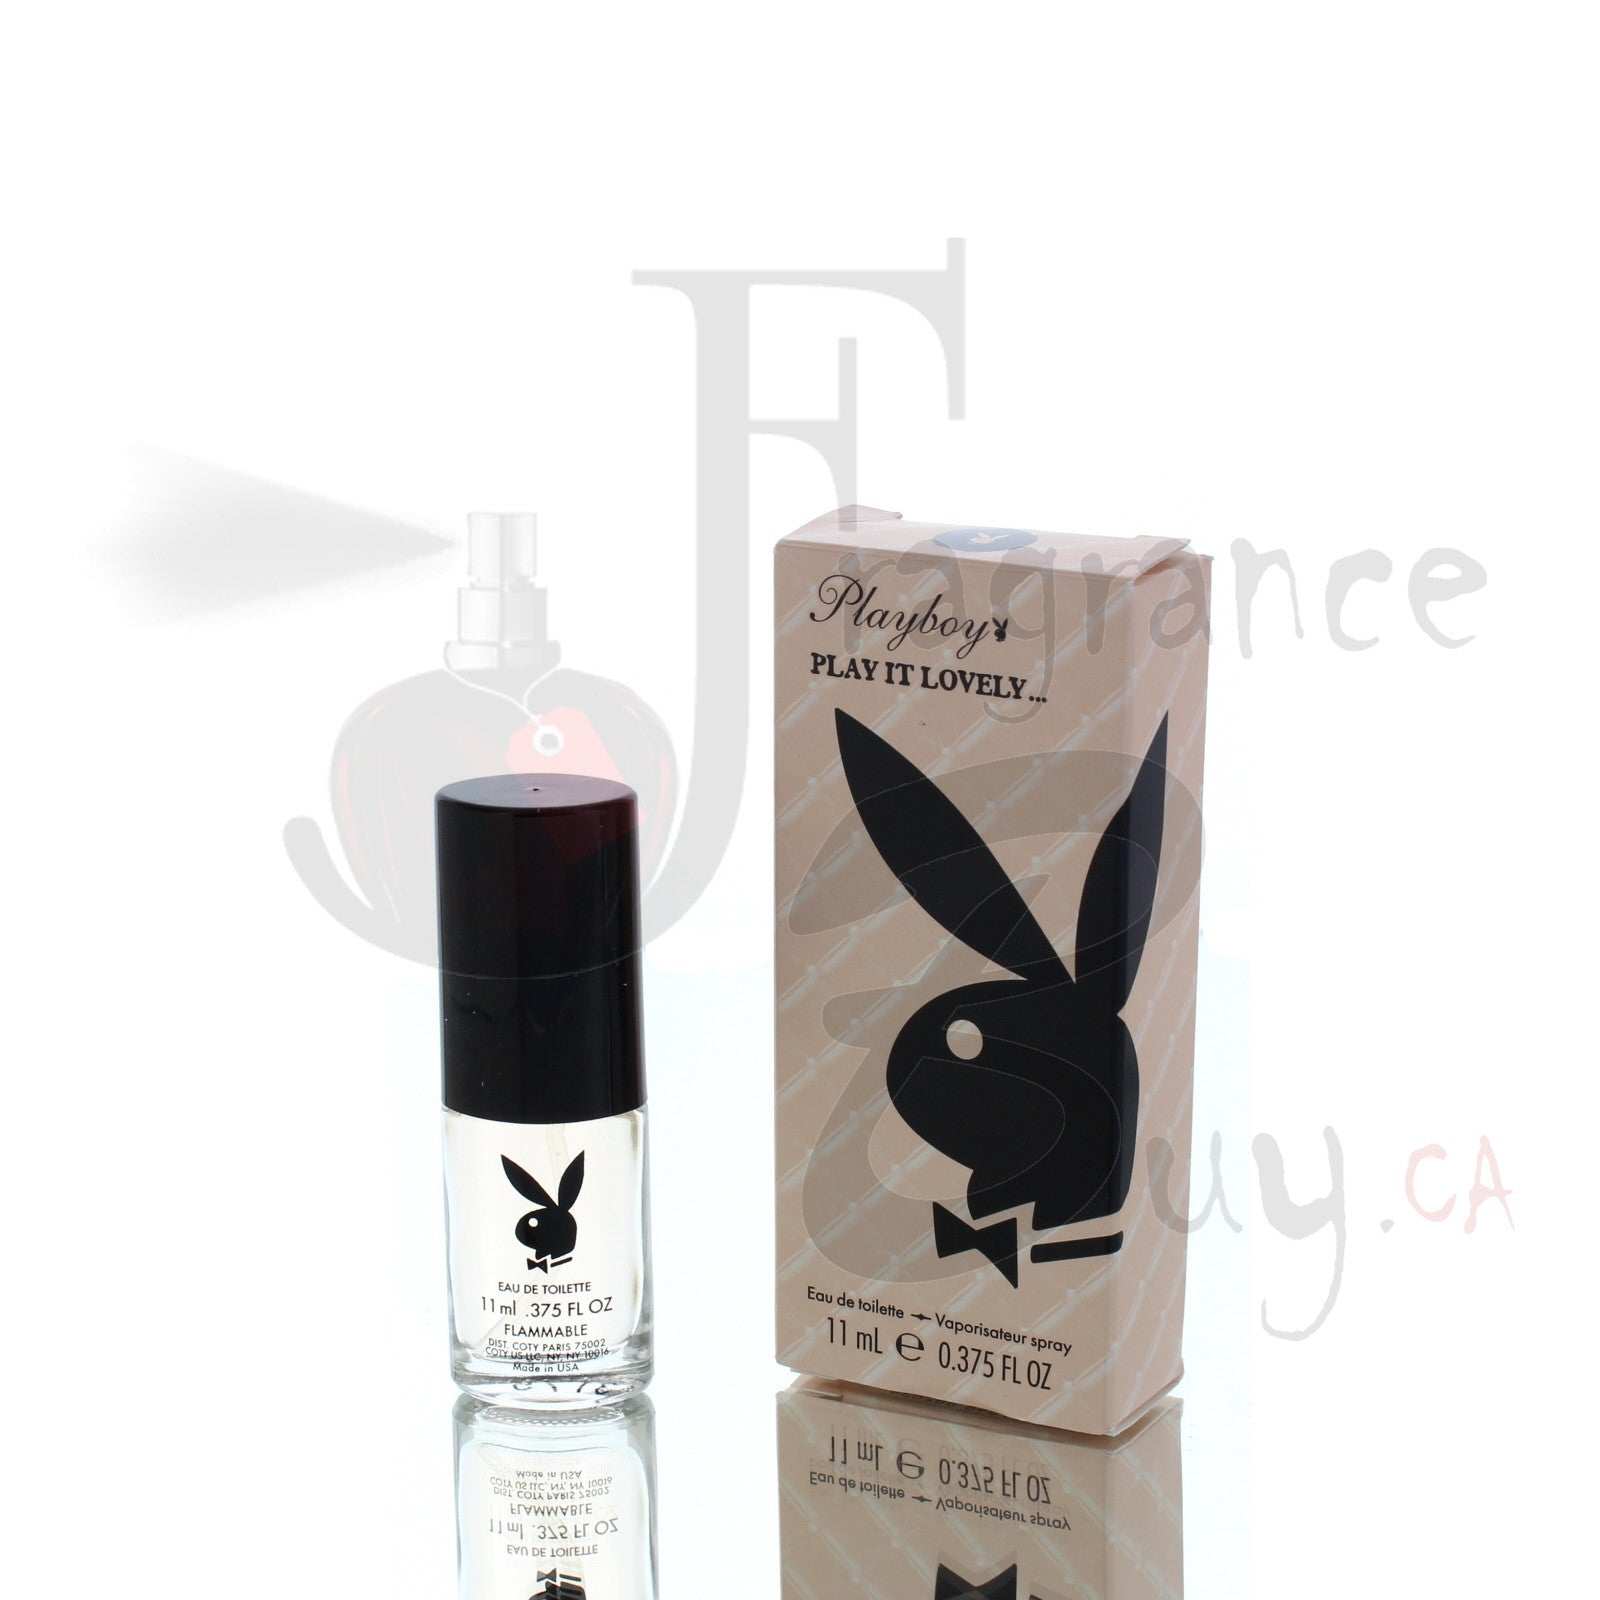 Playboy Play It Lovely Travel Pack for Woman